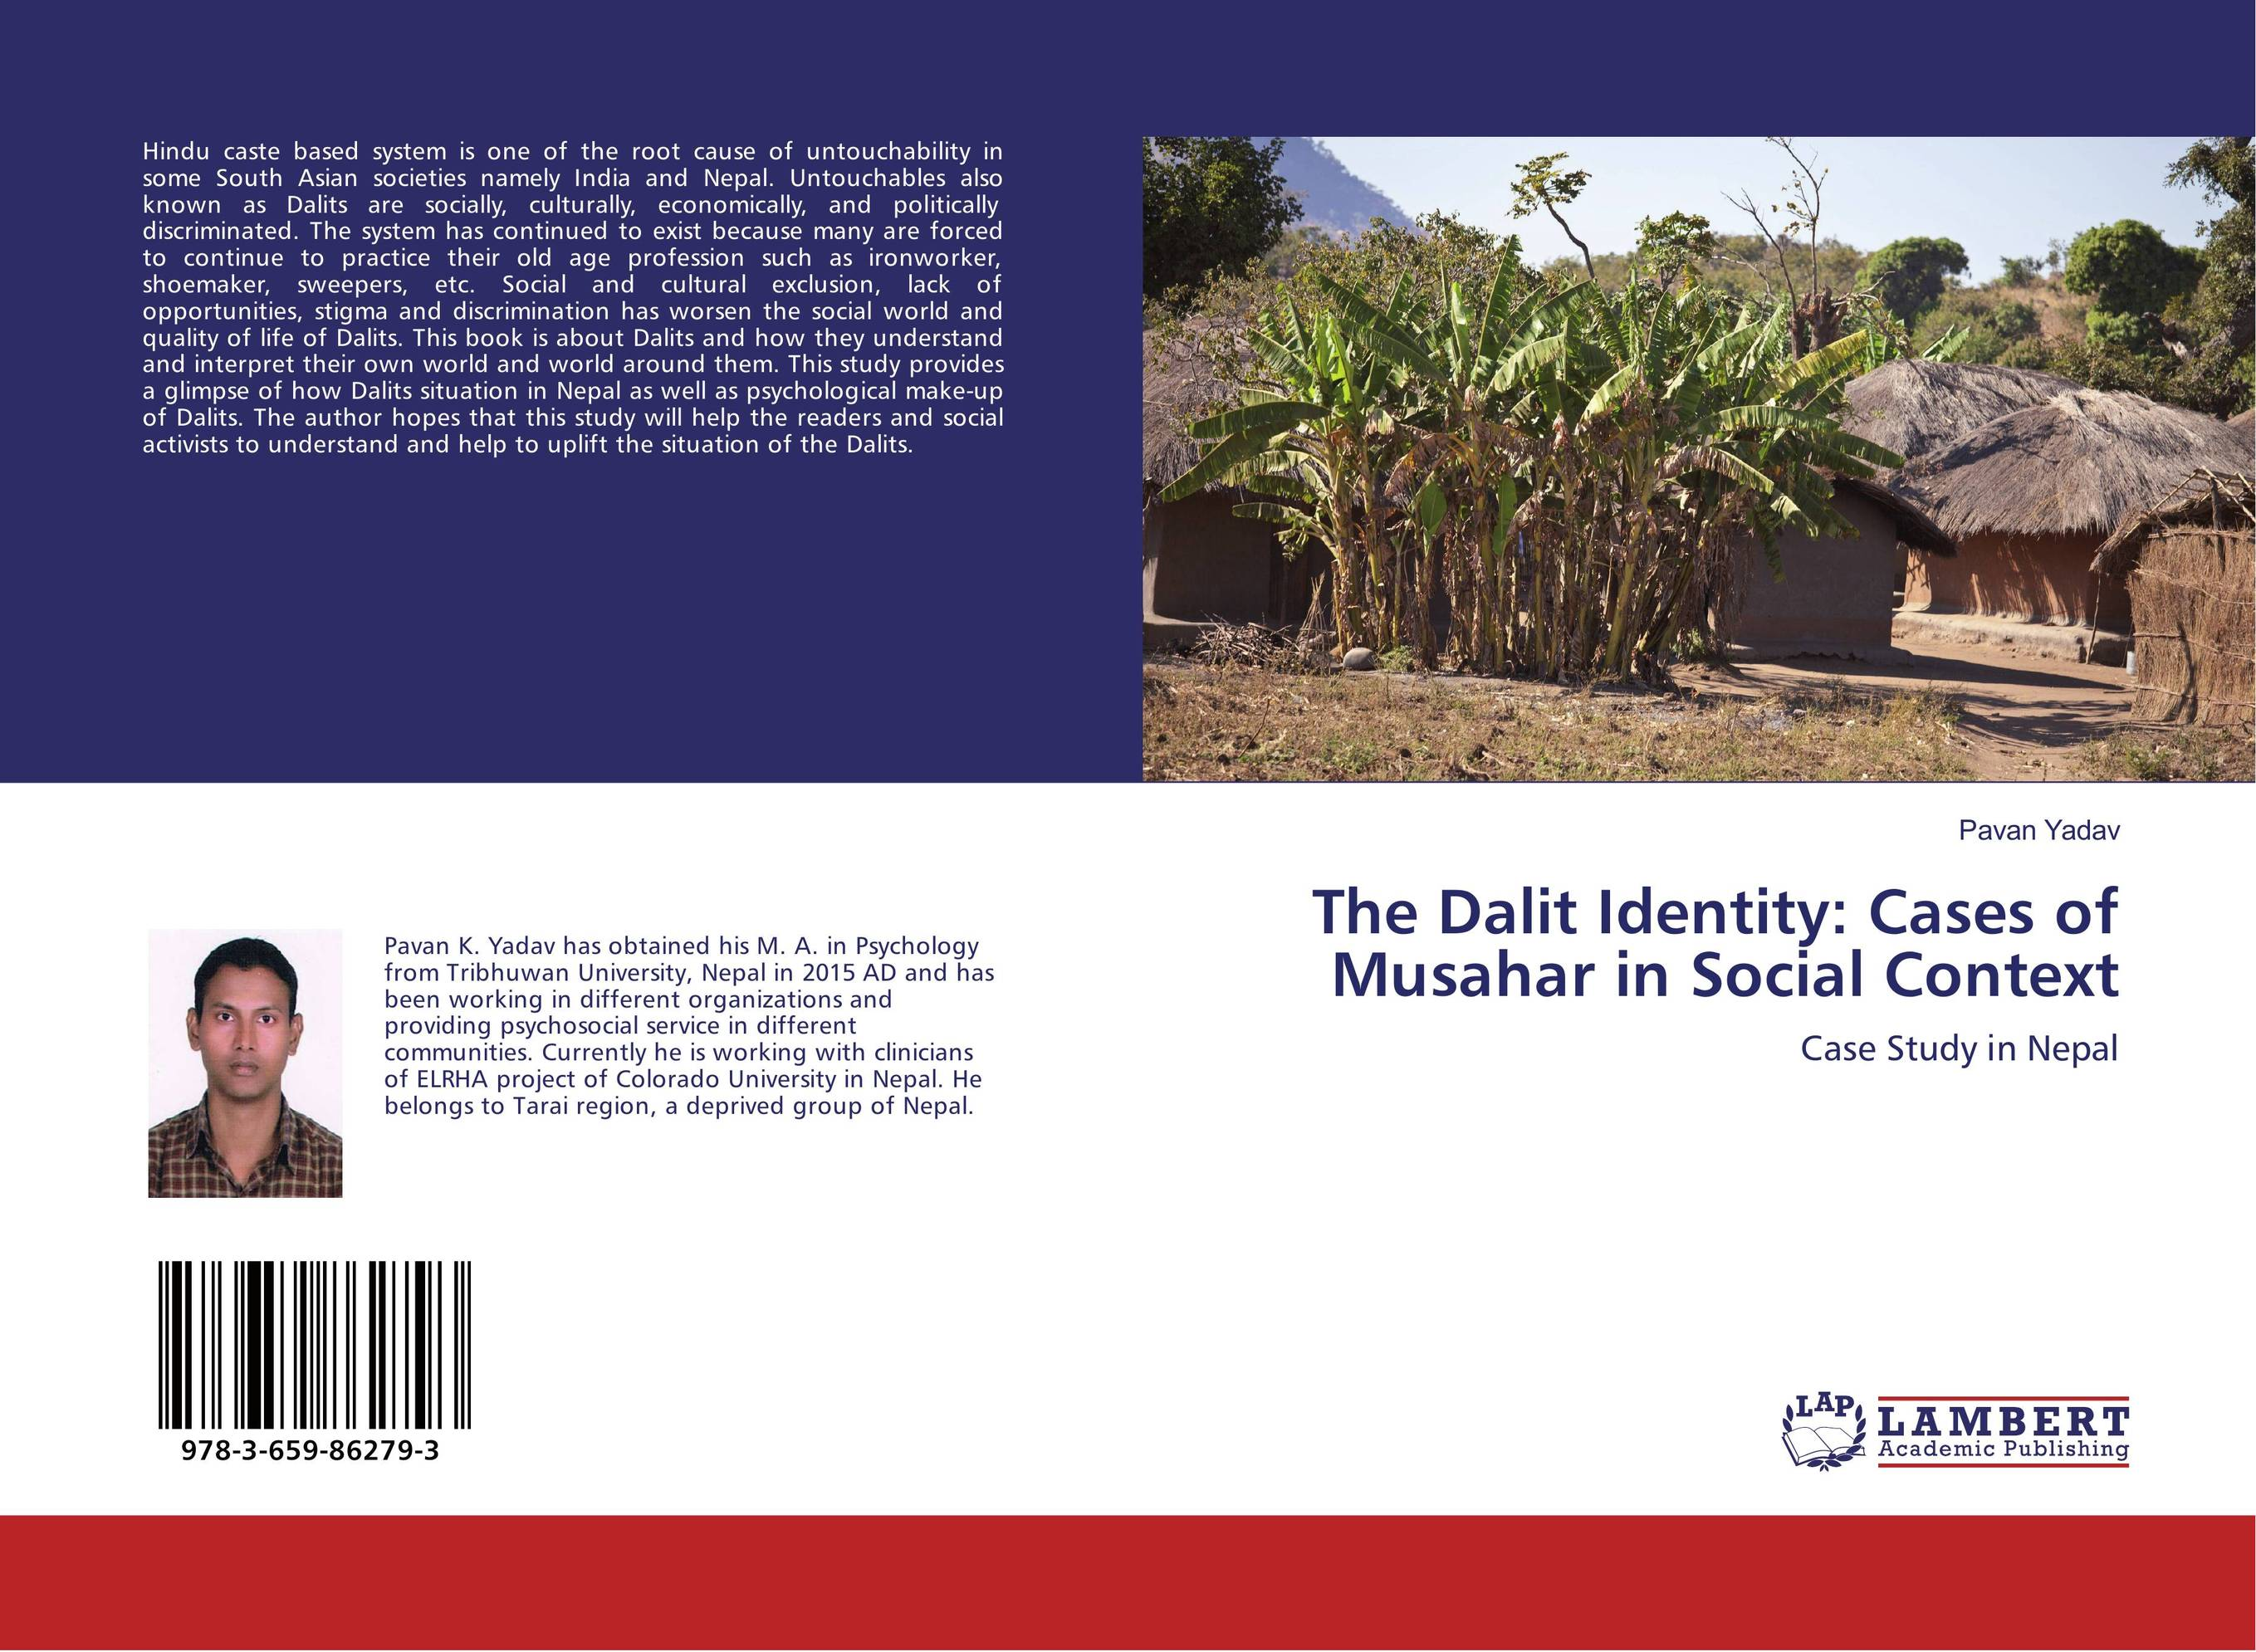 The Dalit Identity: Cases of Musahar in Social Context social sufferings of widows in nepal